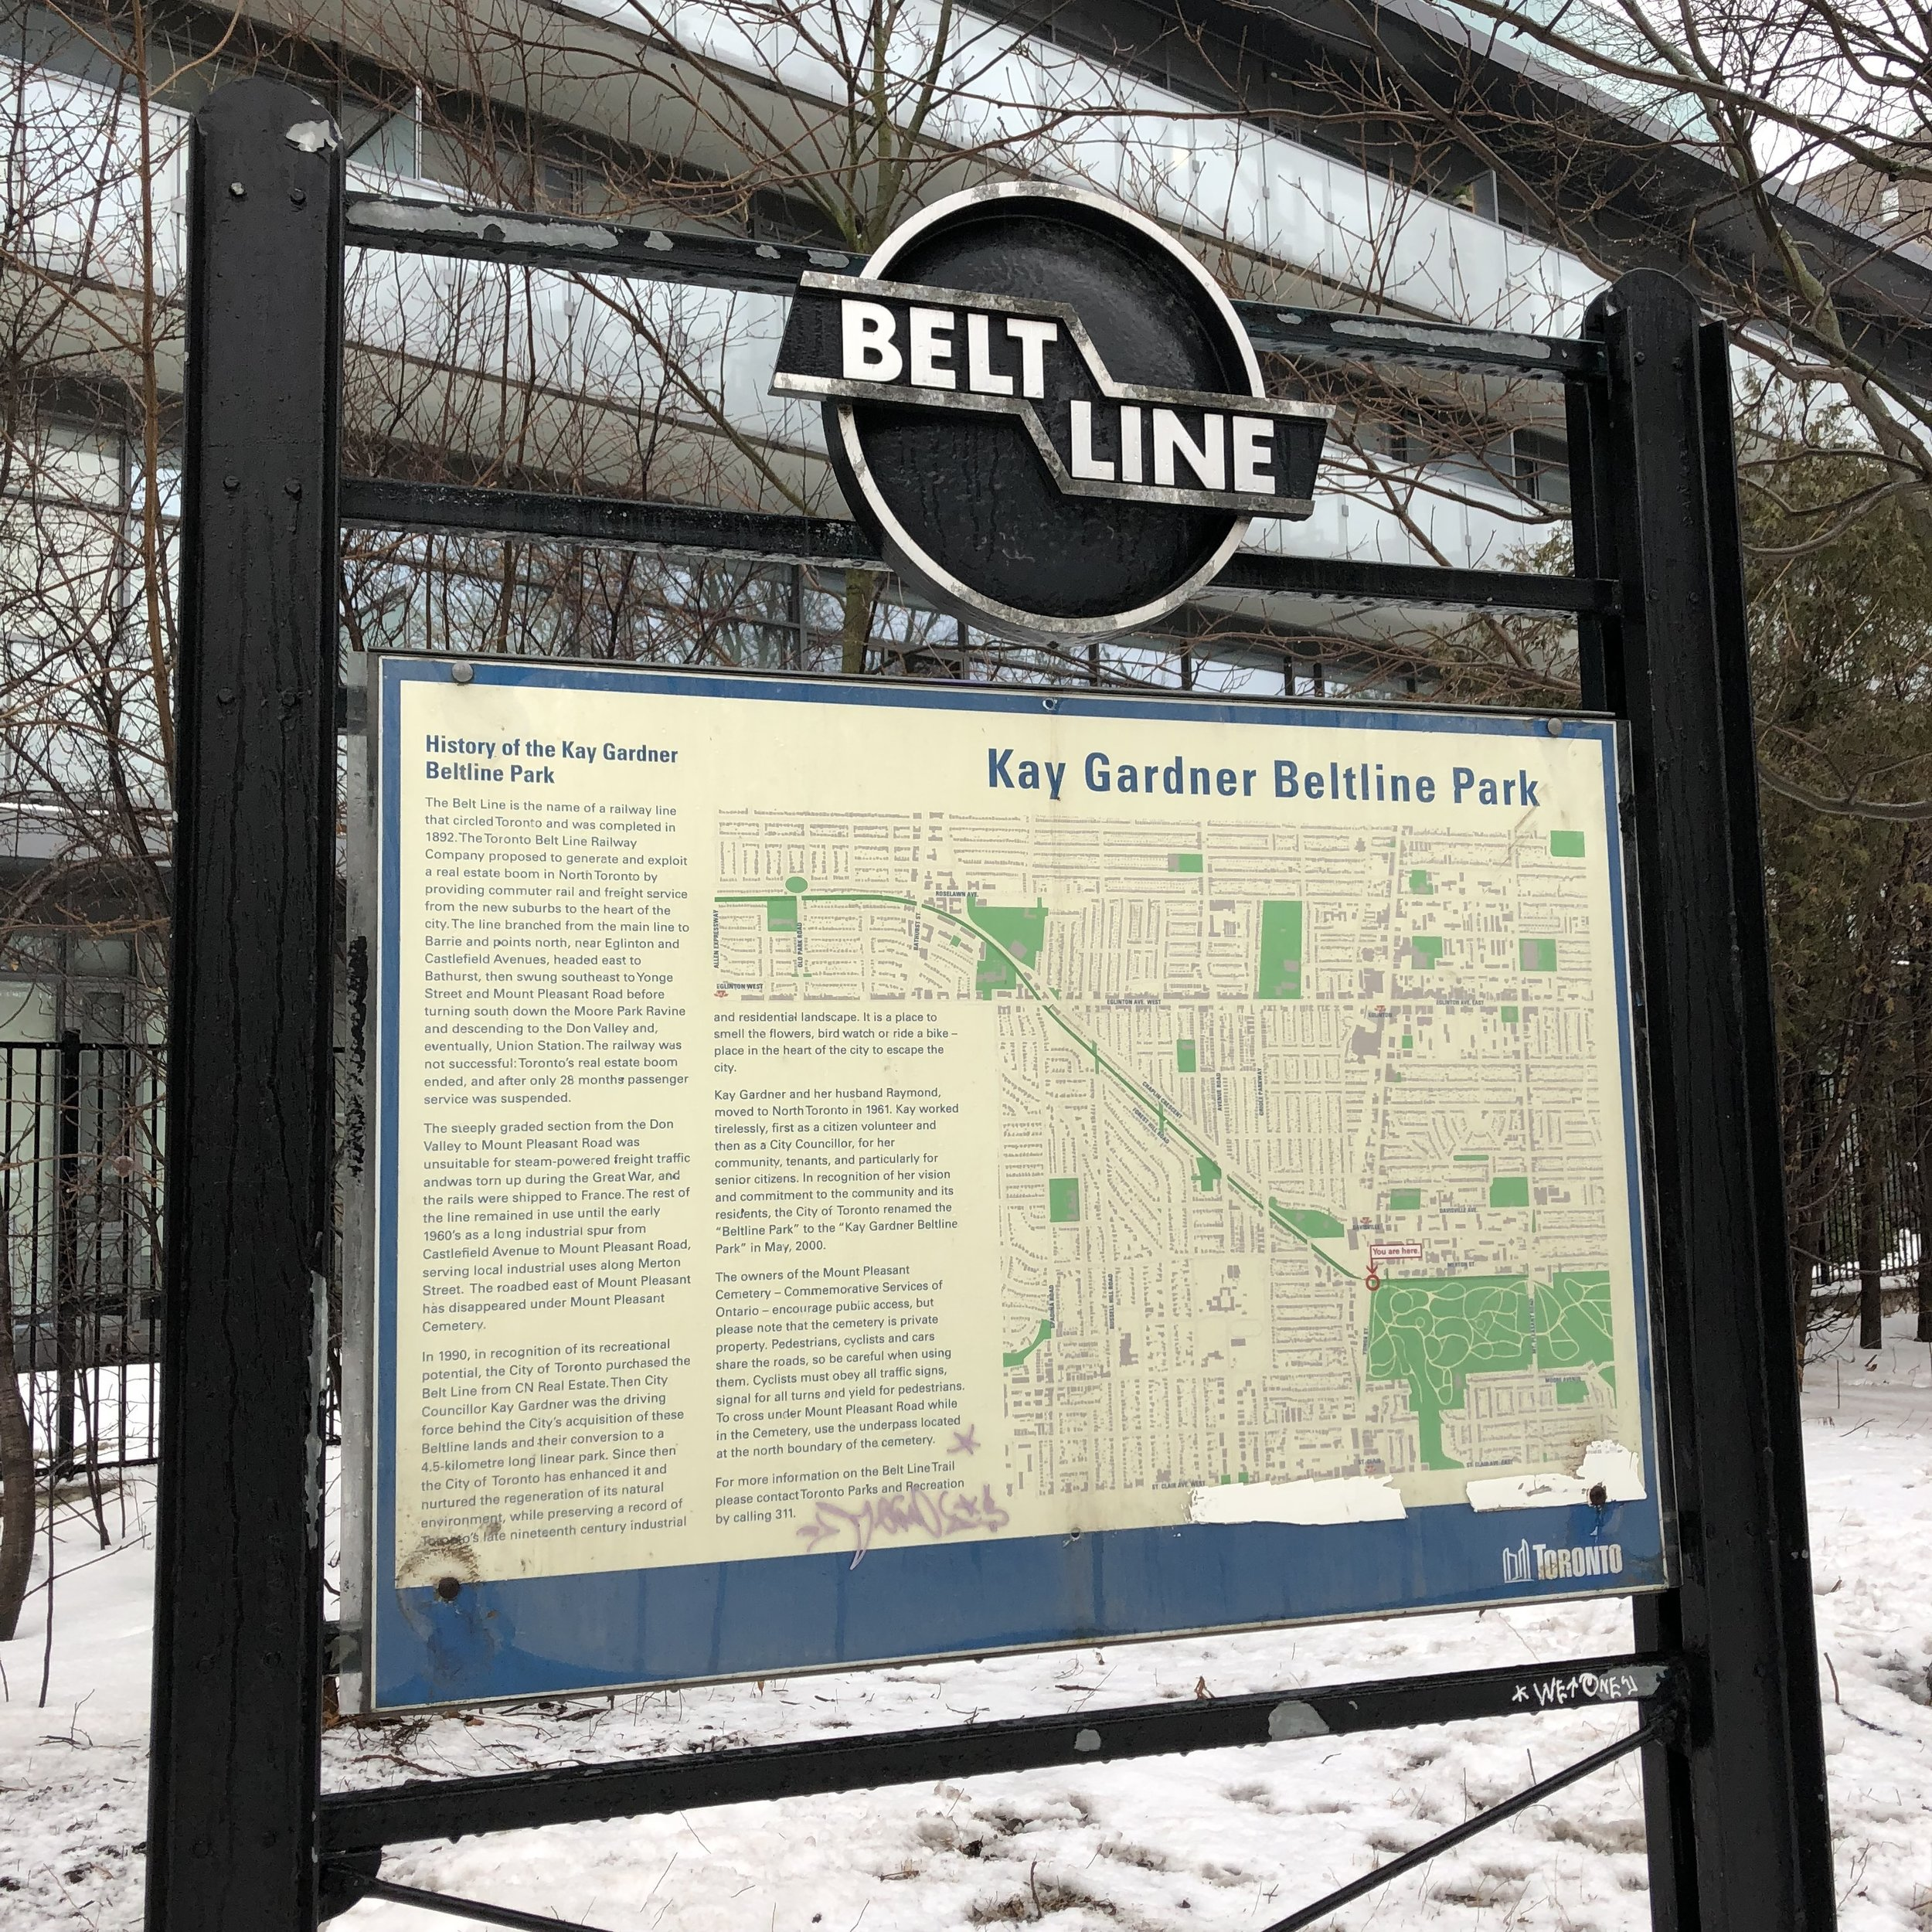 """""""In 1990, in recognition of its recreational potential, the City of Toronto purchased the Belt Line from CN Real Estate. Then City Counsillor Kay Gardner was the driving force behind the City's acquisition of these Beltline lands and their conversion to a 4.5 kilometre long linear park."""""""